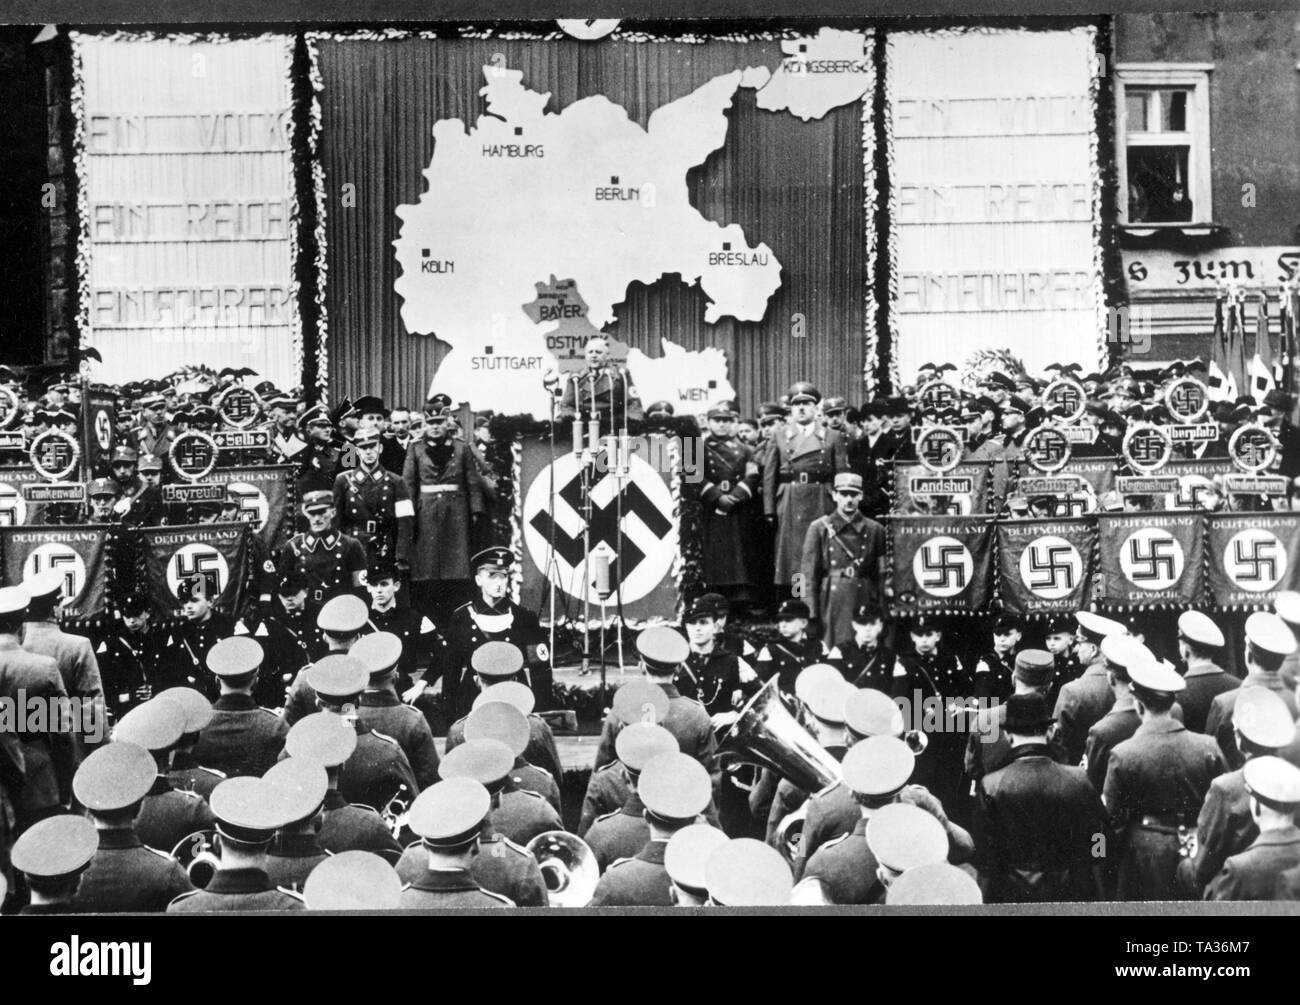 In Prachatice takes place the solemn takeover of the Bohemian Forest by the Gauleiter of the Bavarian Ostmark, Fritz Waechtler (at the lectern). 20,000 party members of the Gau region attend this event in their local groups in collective reception. - Stock Image